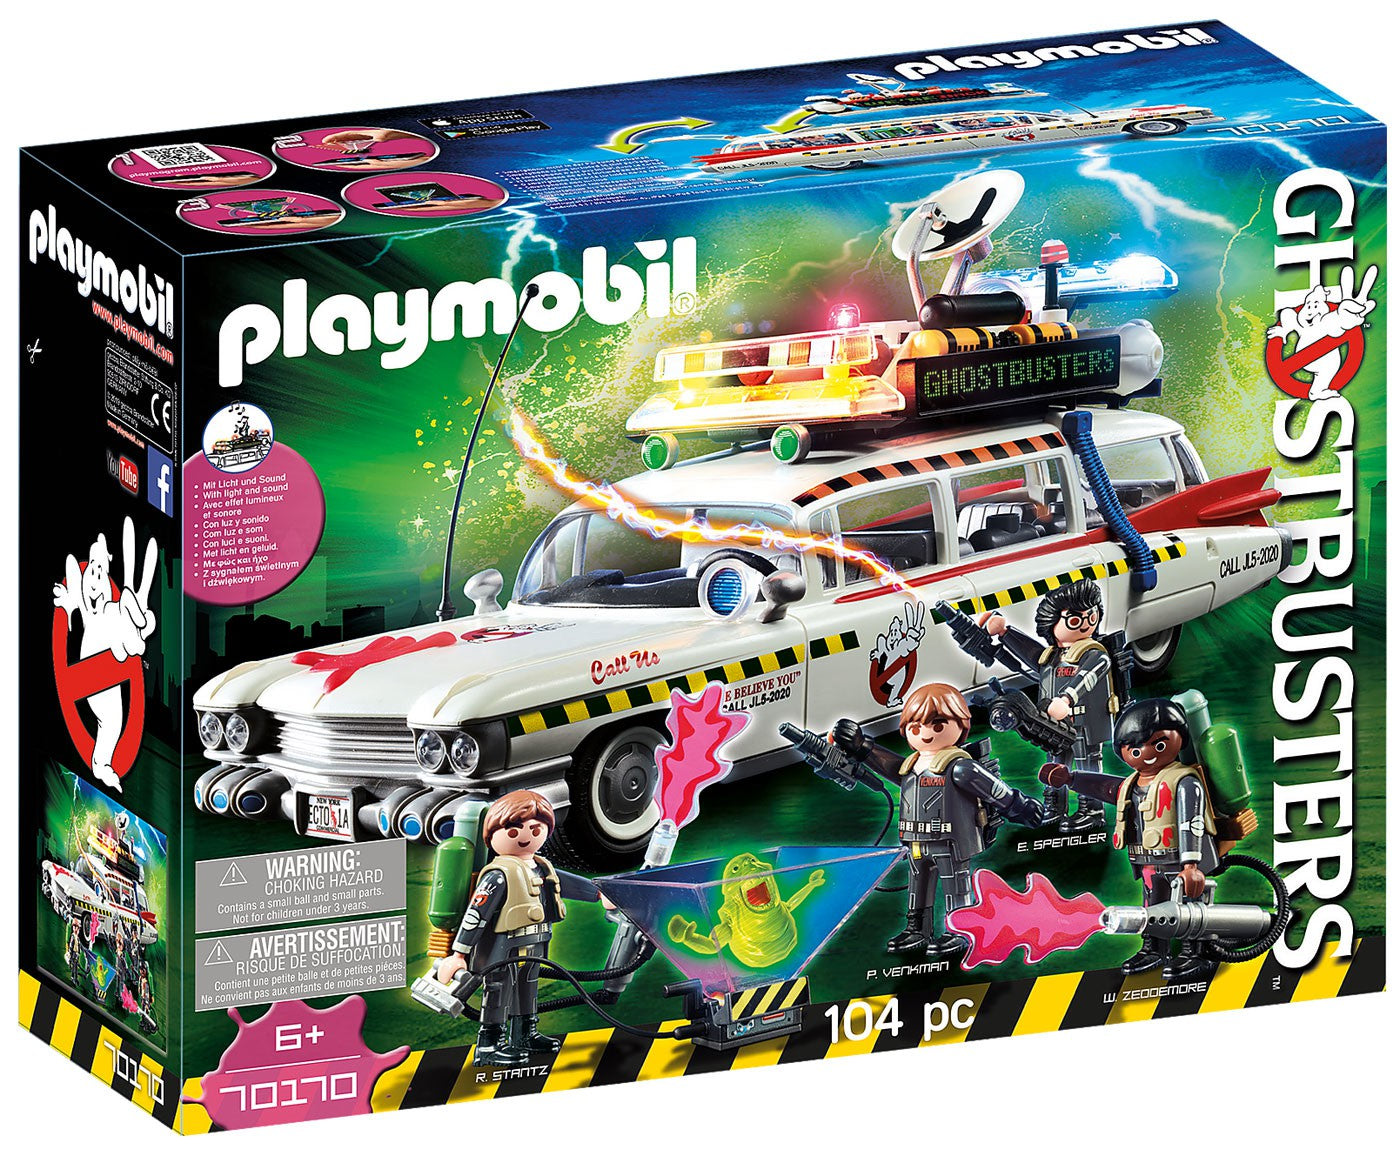 Playmobil Ghostbusters Ecto-1A